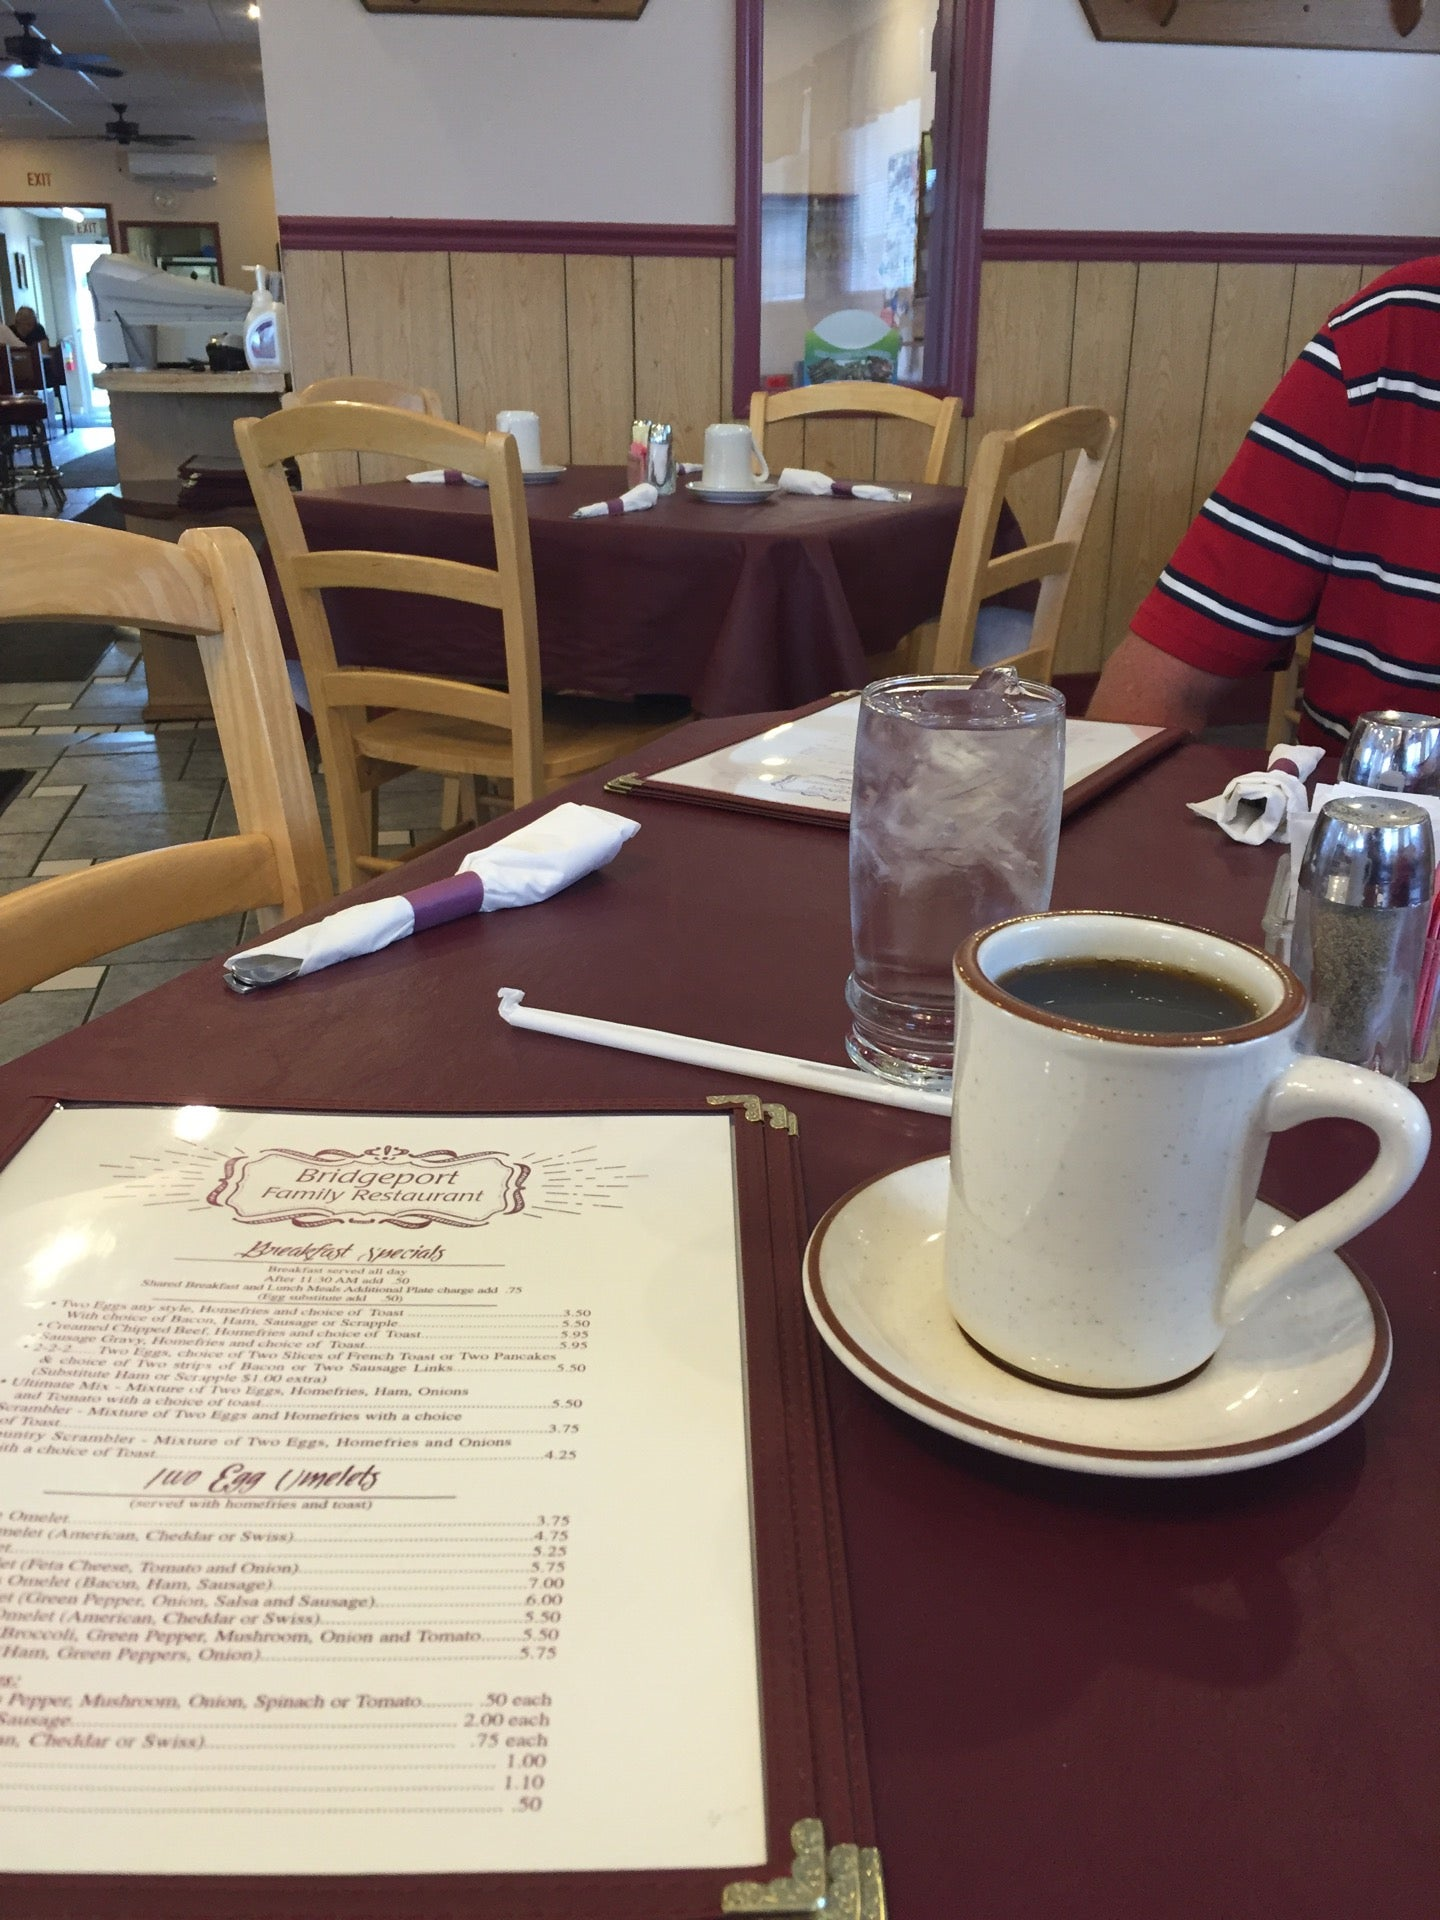 Coffee cup family restaurant - The Daily Meal Editors And Community Say